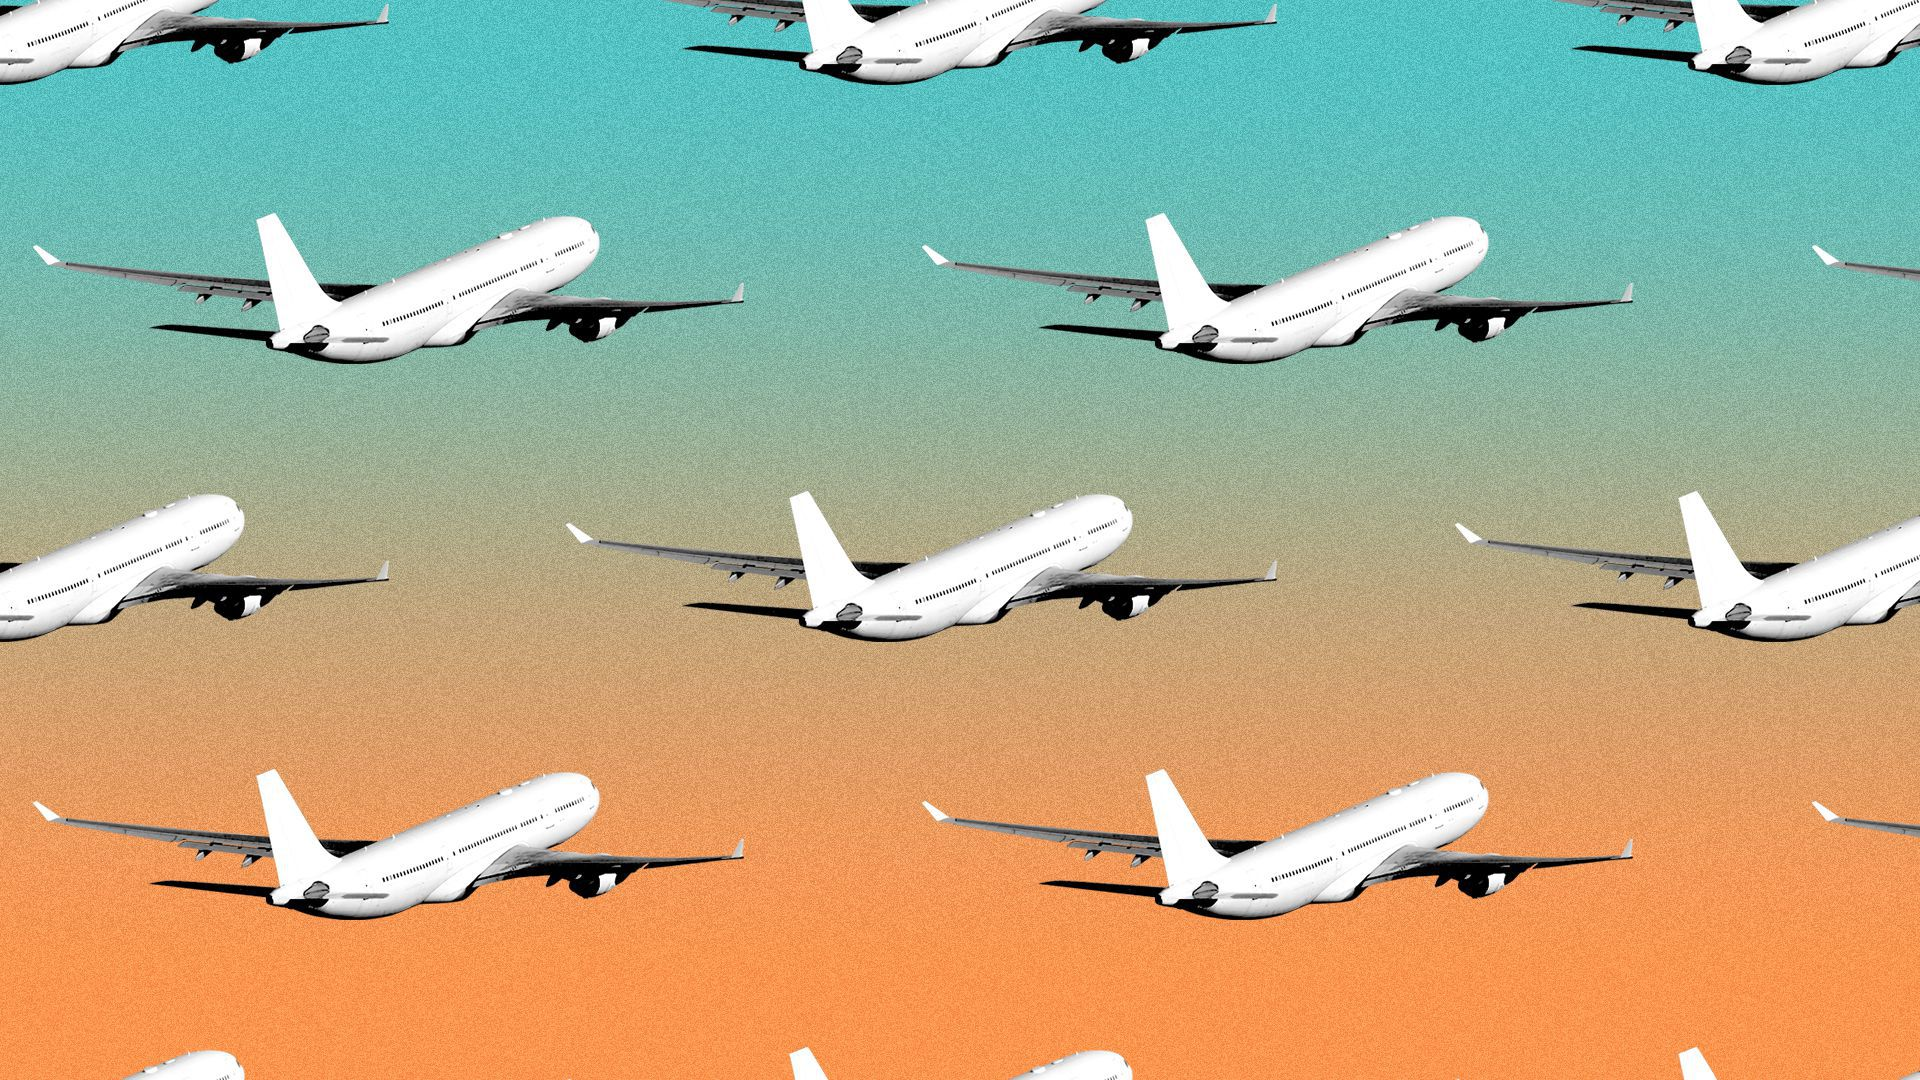 Illustration of a pattern of airplanes.